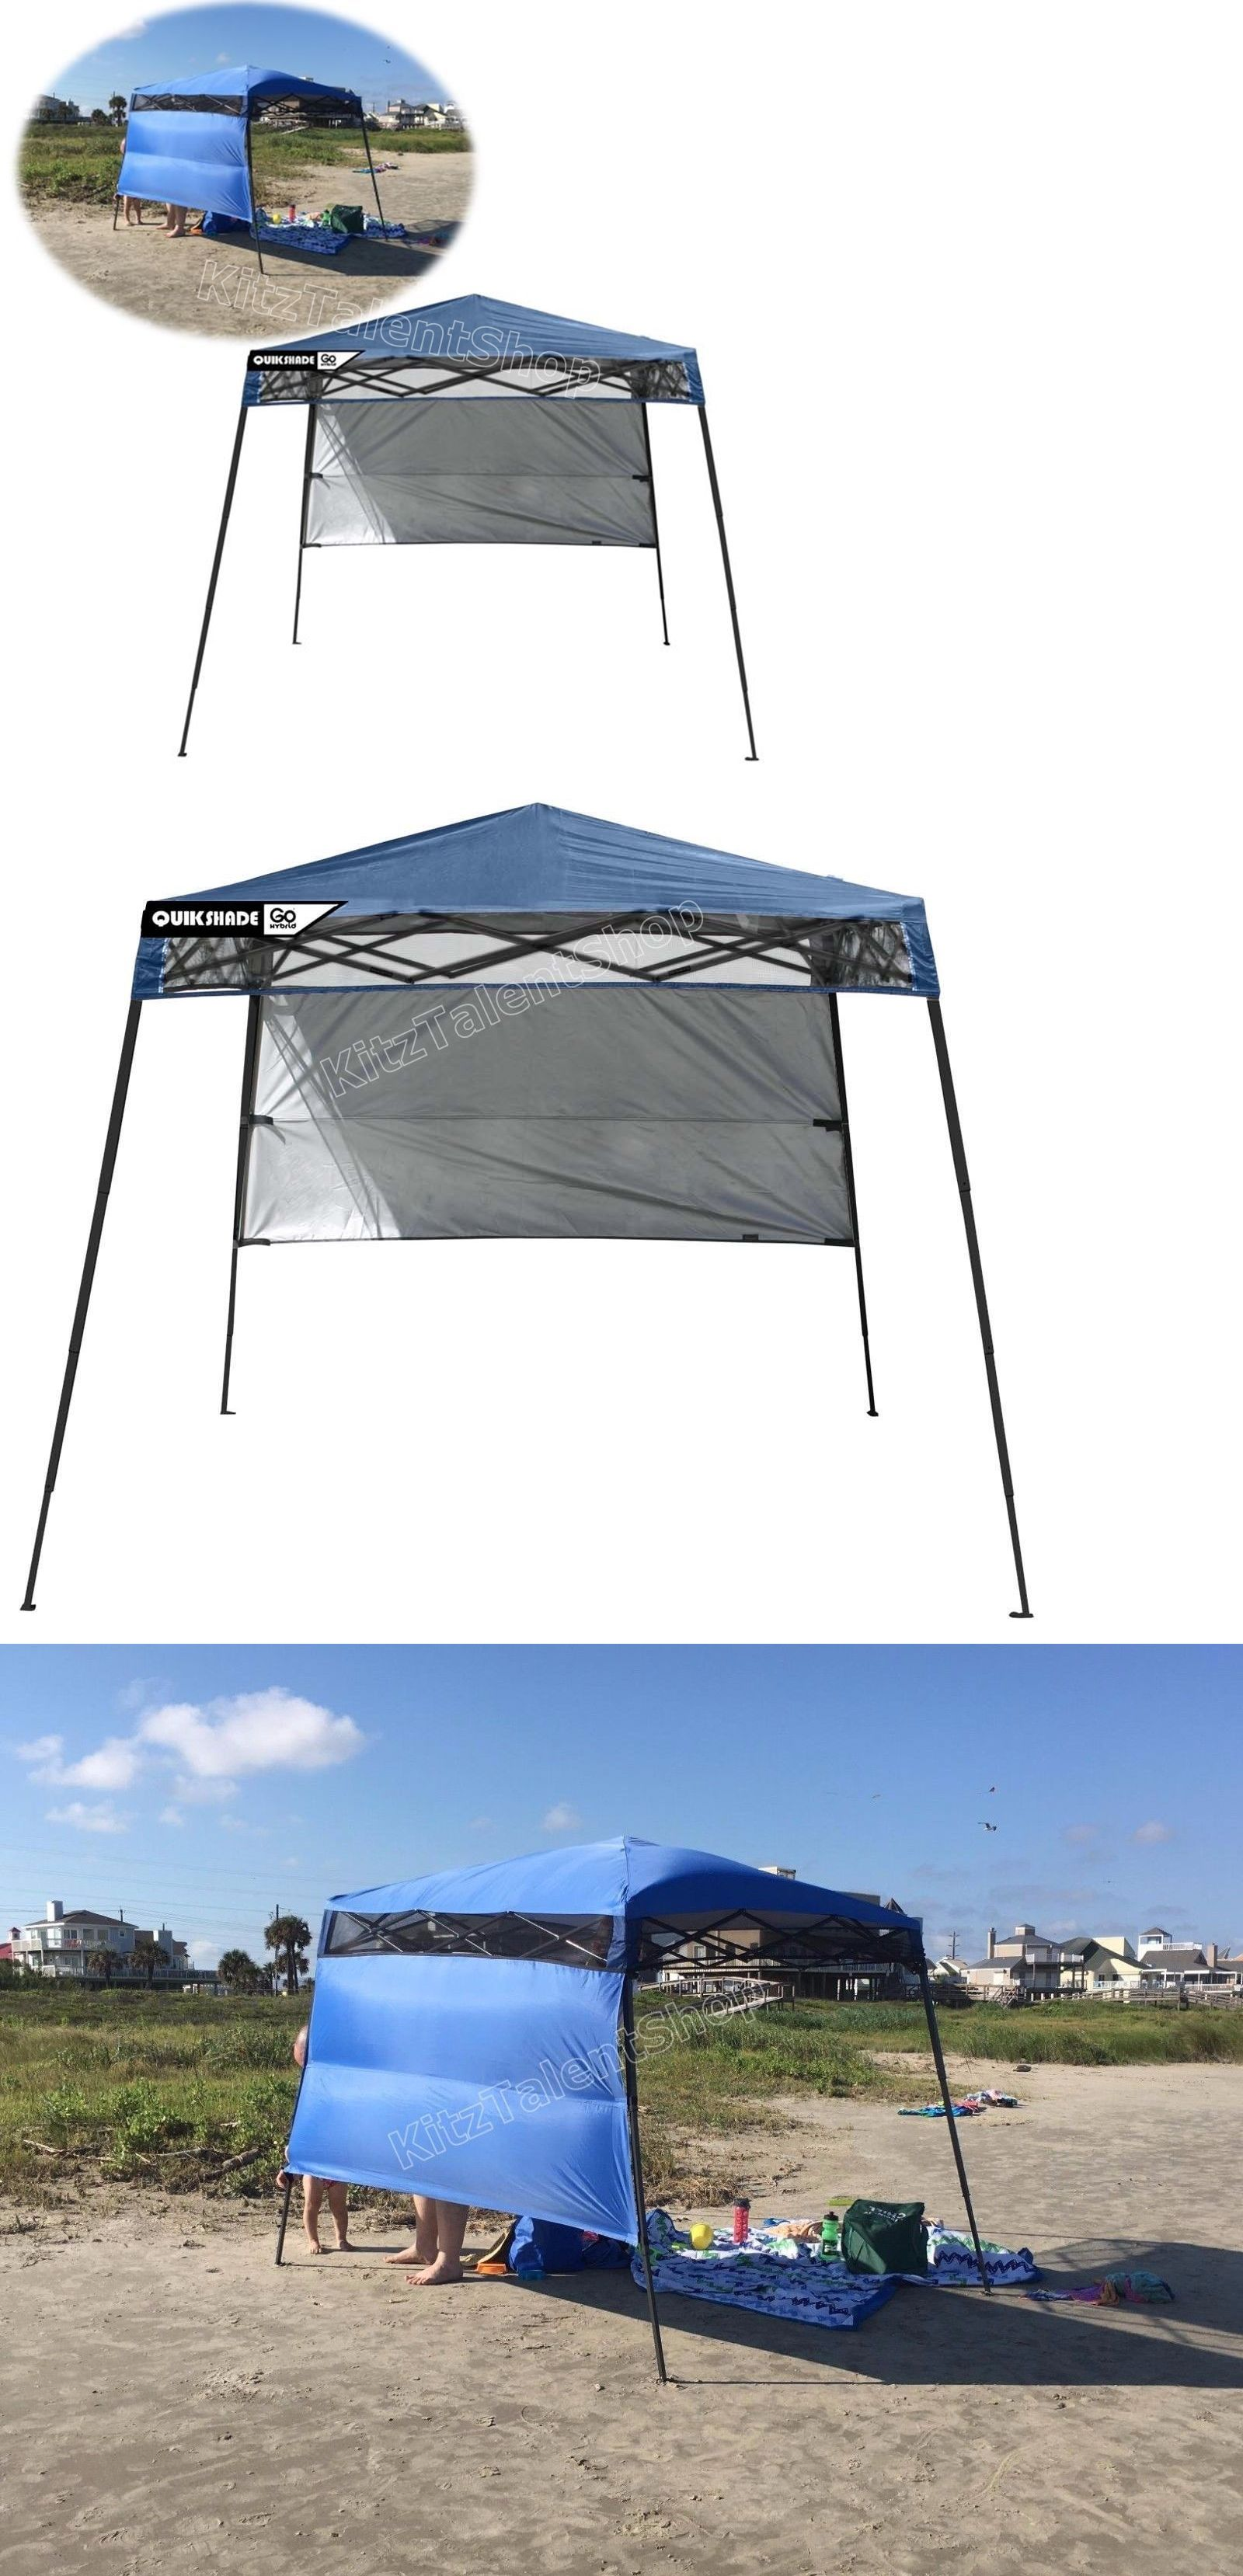 Canopies And Shelters 179011: New Beach Tent Canopy Cabana